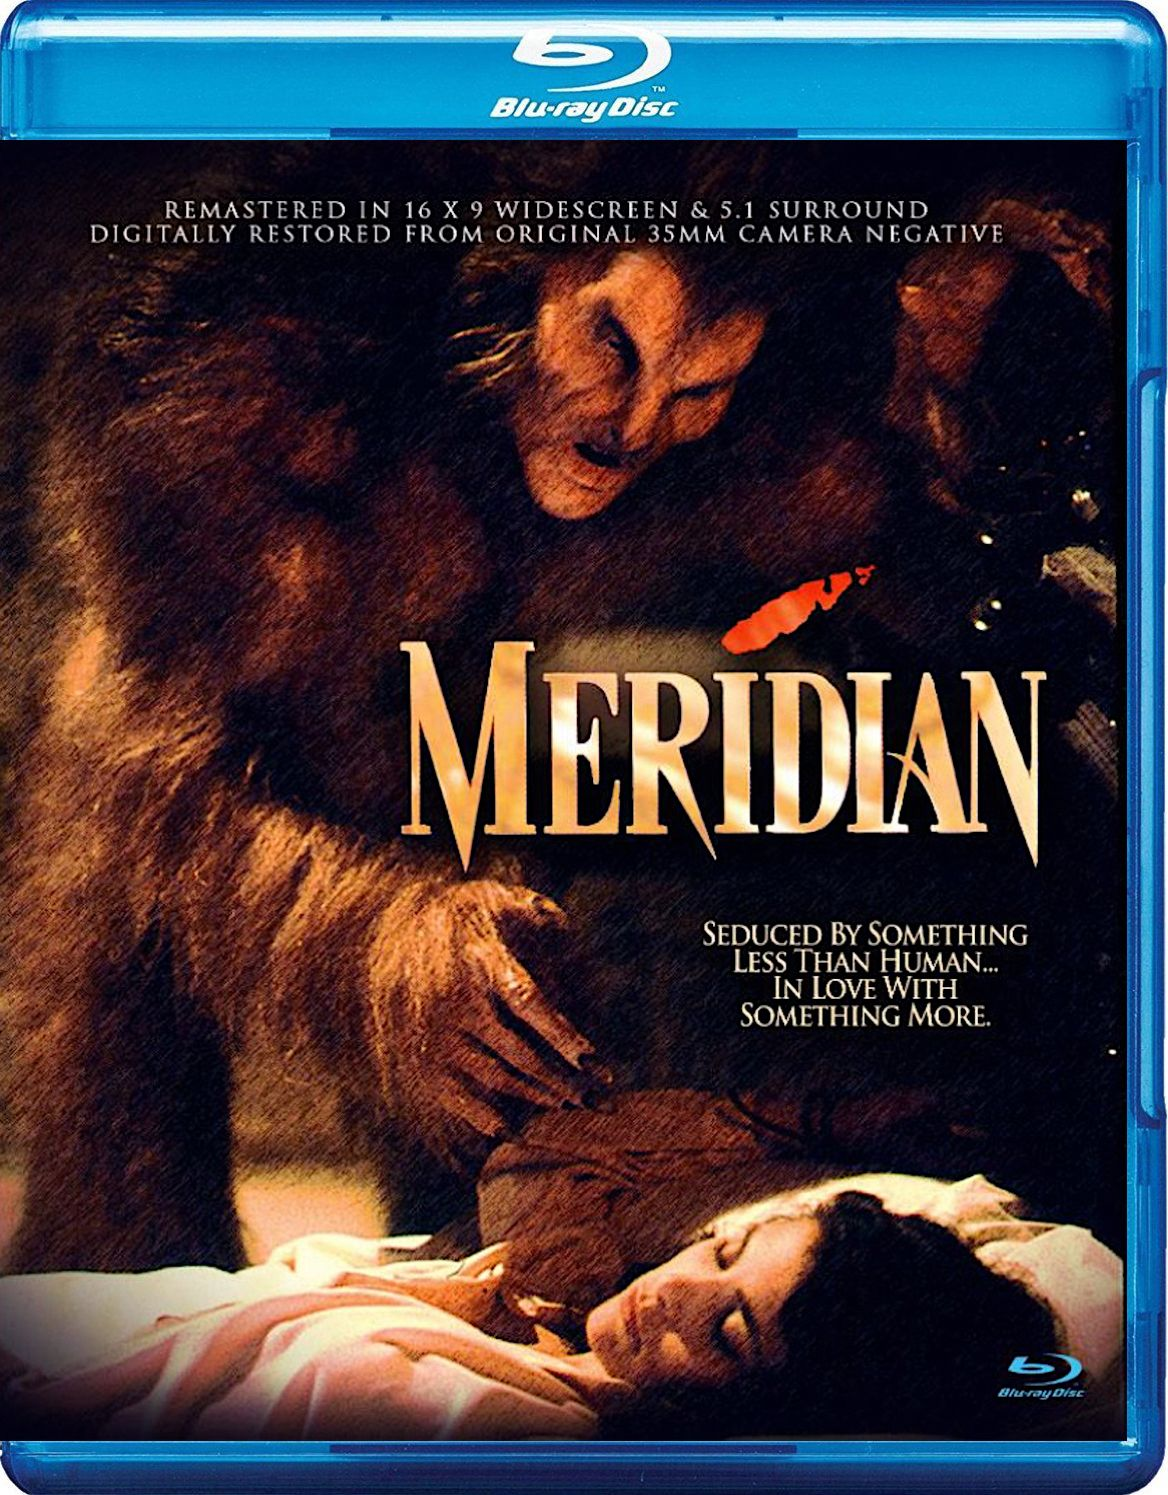 Meridian Blu Ray Full Moon The Beast Movie Free Movies Online Meridian